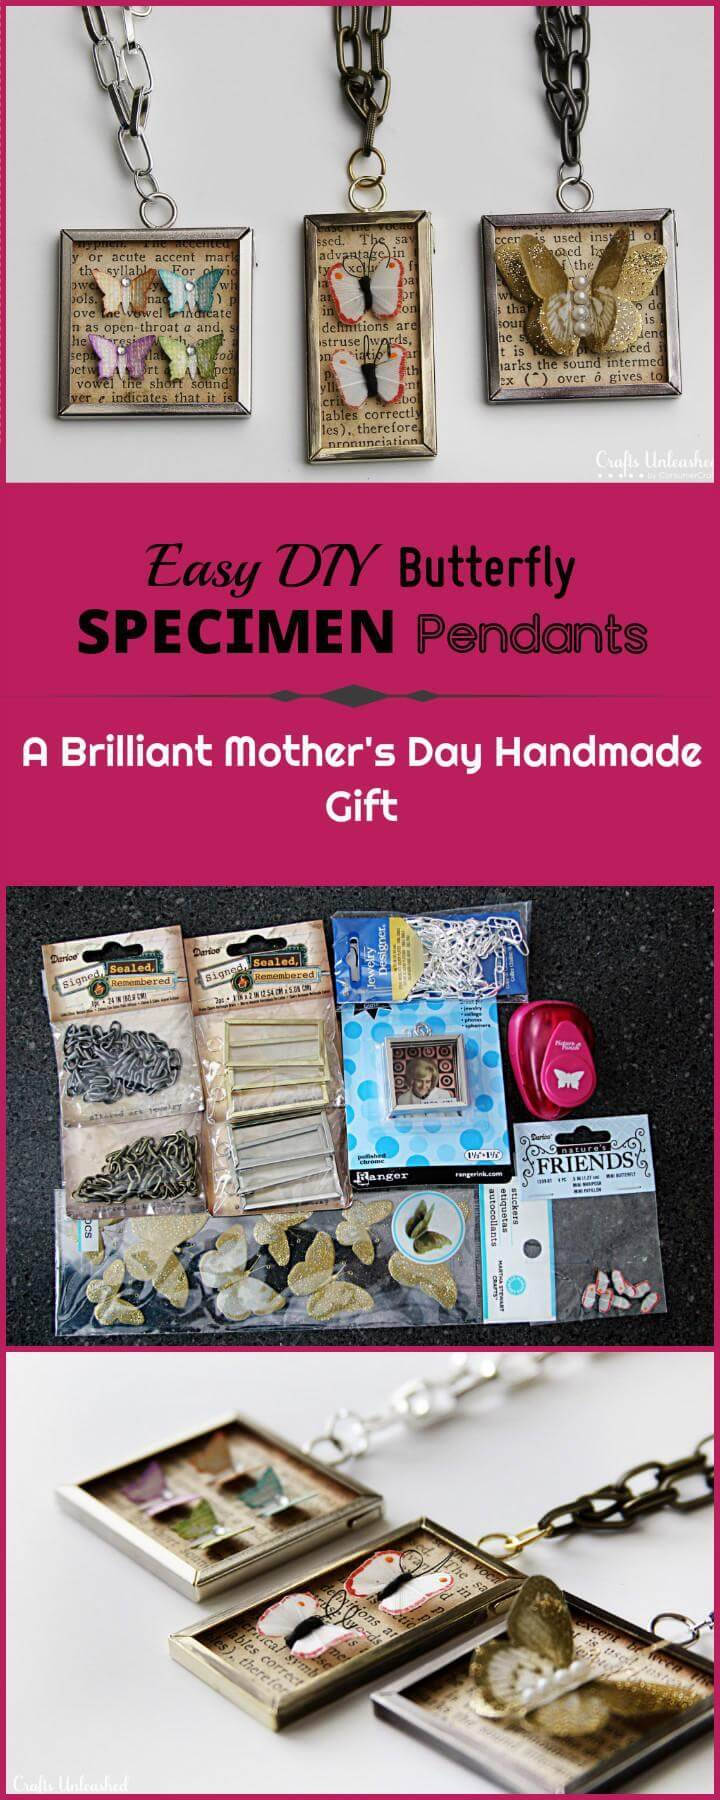 DIY easy yet beautiful butterfly specimen pendants